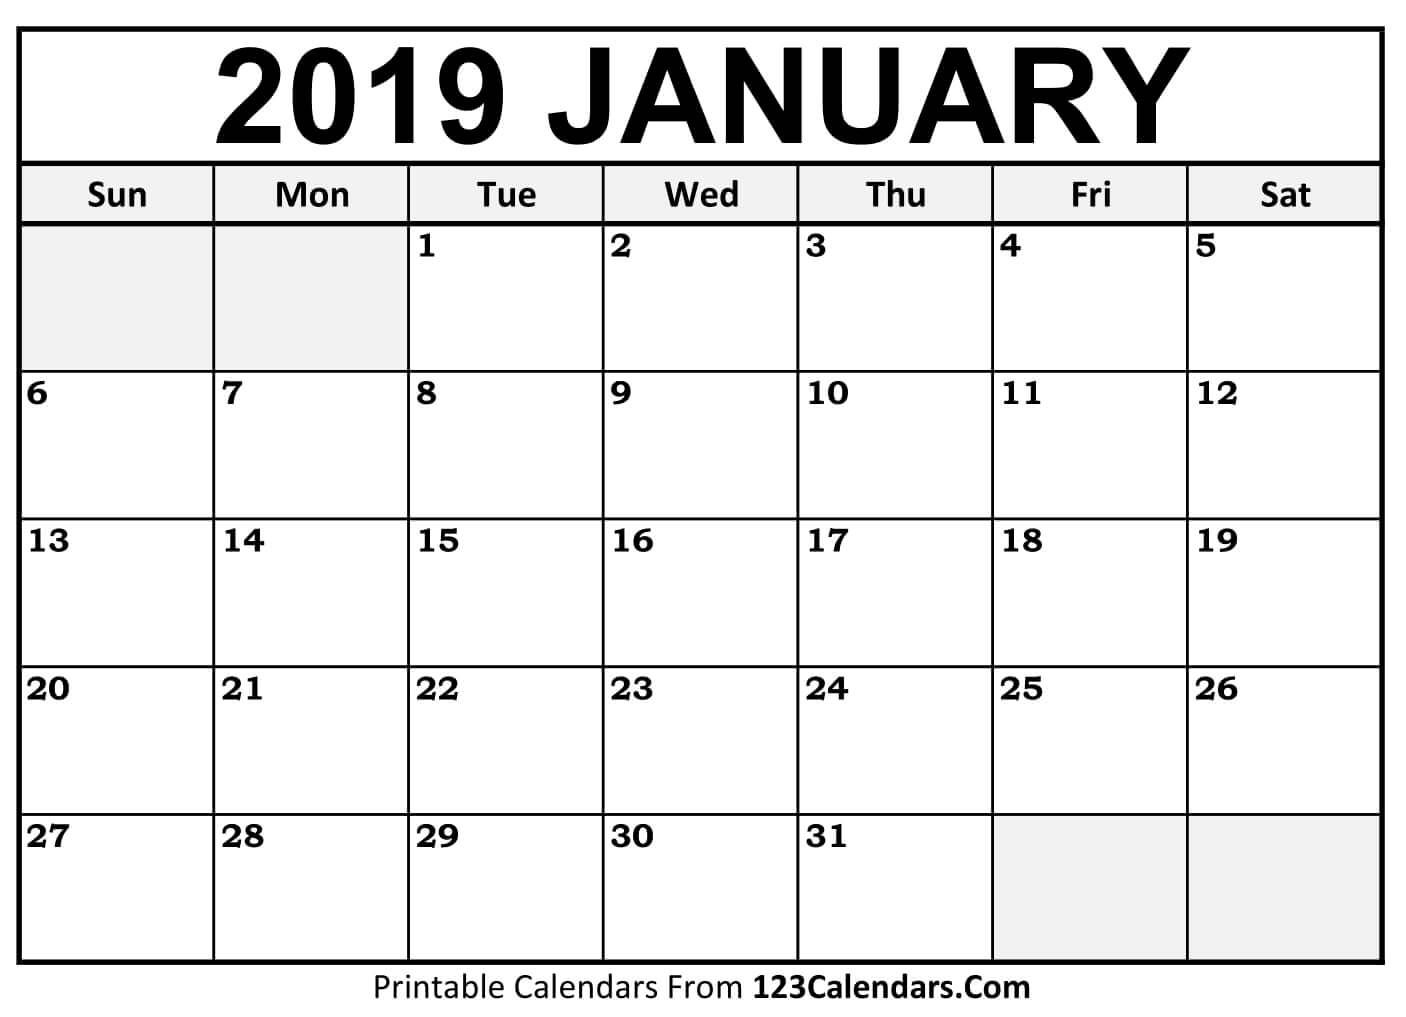 January Calendar 2019 | Blank January 2019 Calendar Printable Free within Free Printable Blank Calendar August-December